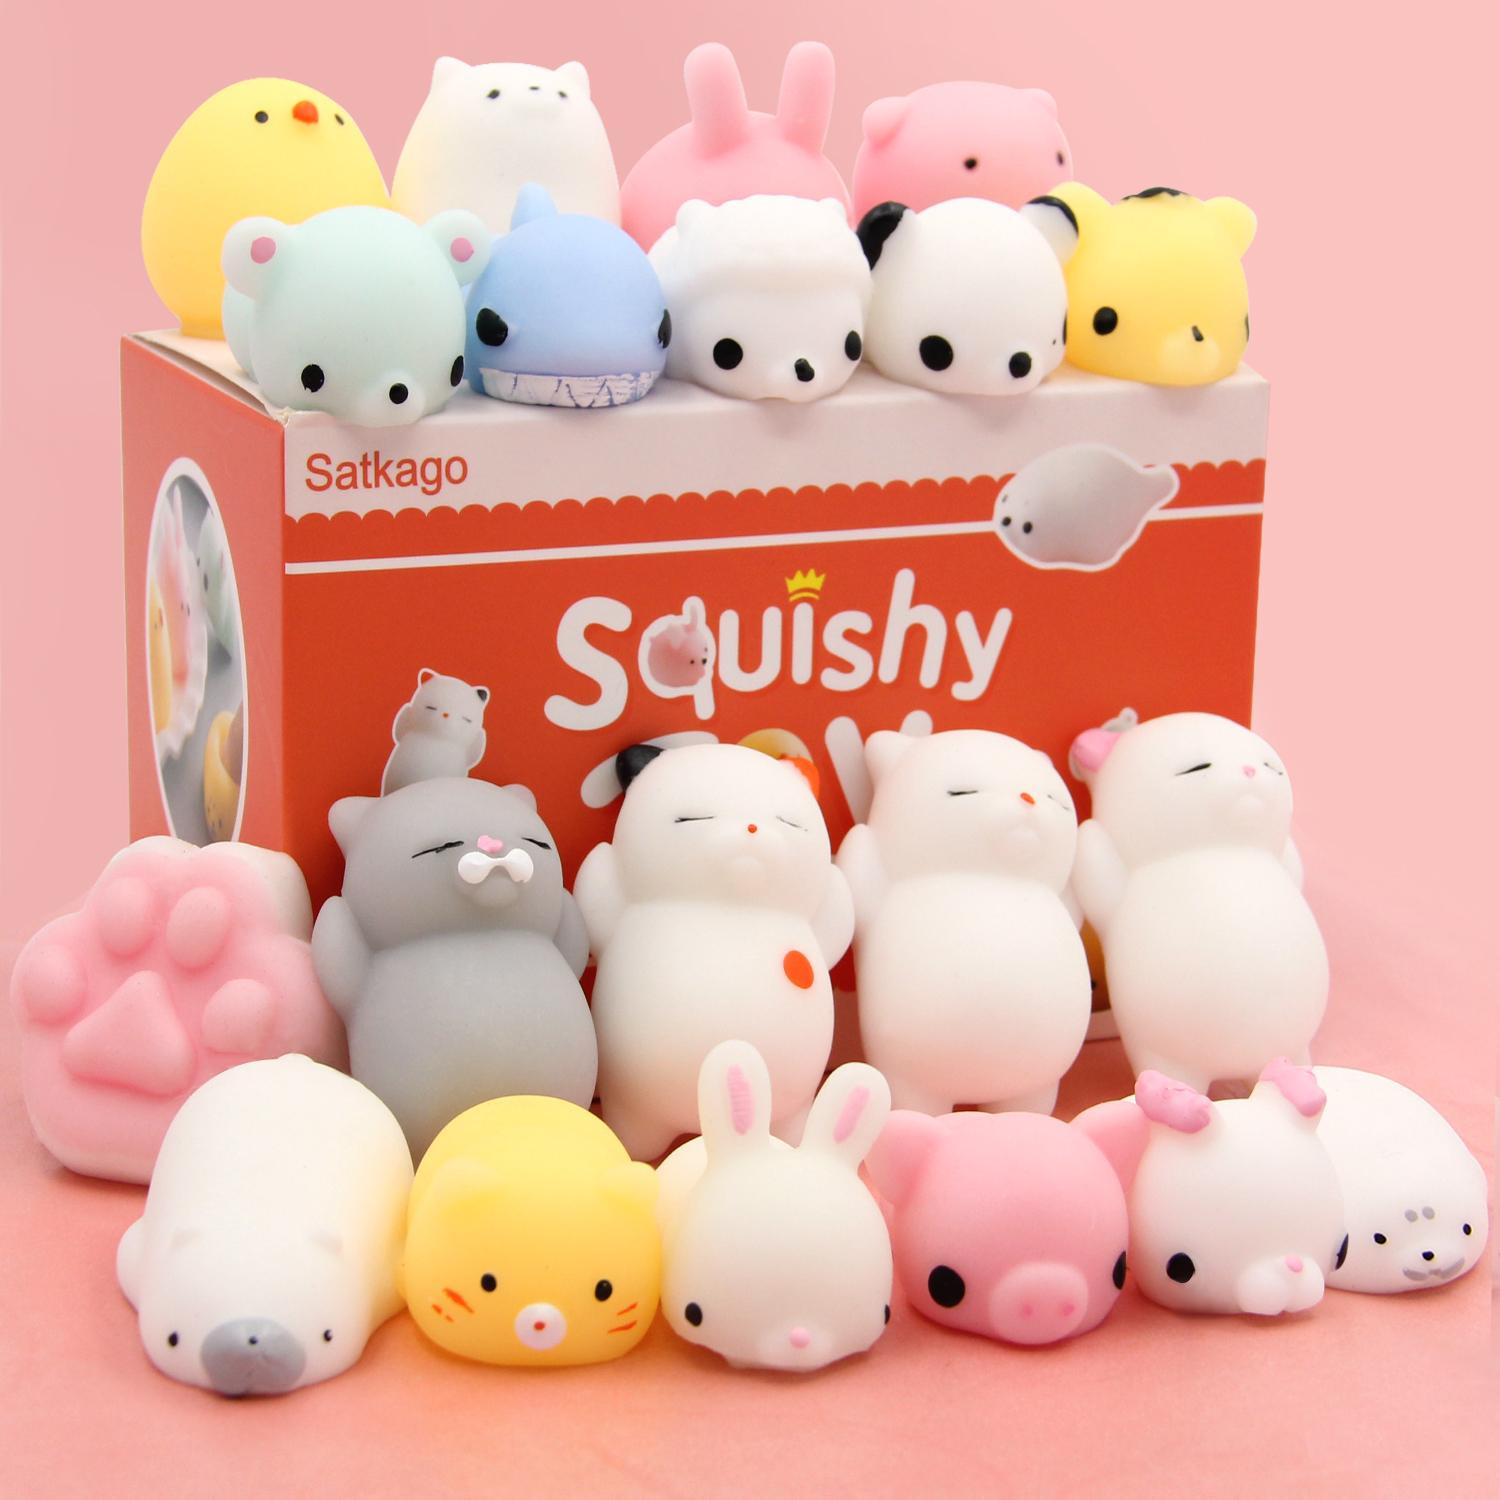 Vococal 20pcs Cute Kawaii Soft Tpr Squishy Squeeze Cartoon Animal Toy For Children Adults Relieves Stress Anxiety Home Decoration By Vococal Shop.